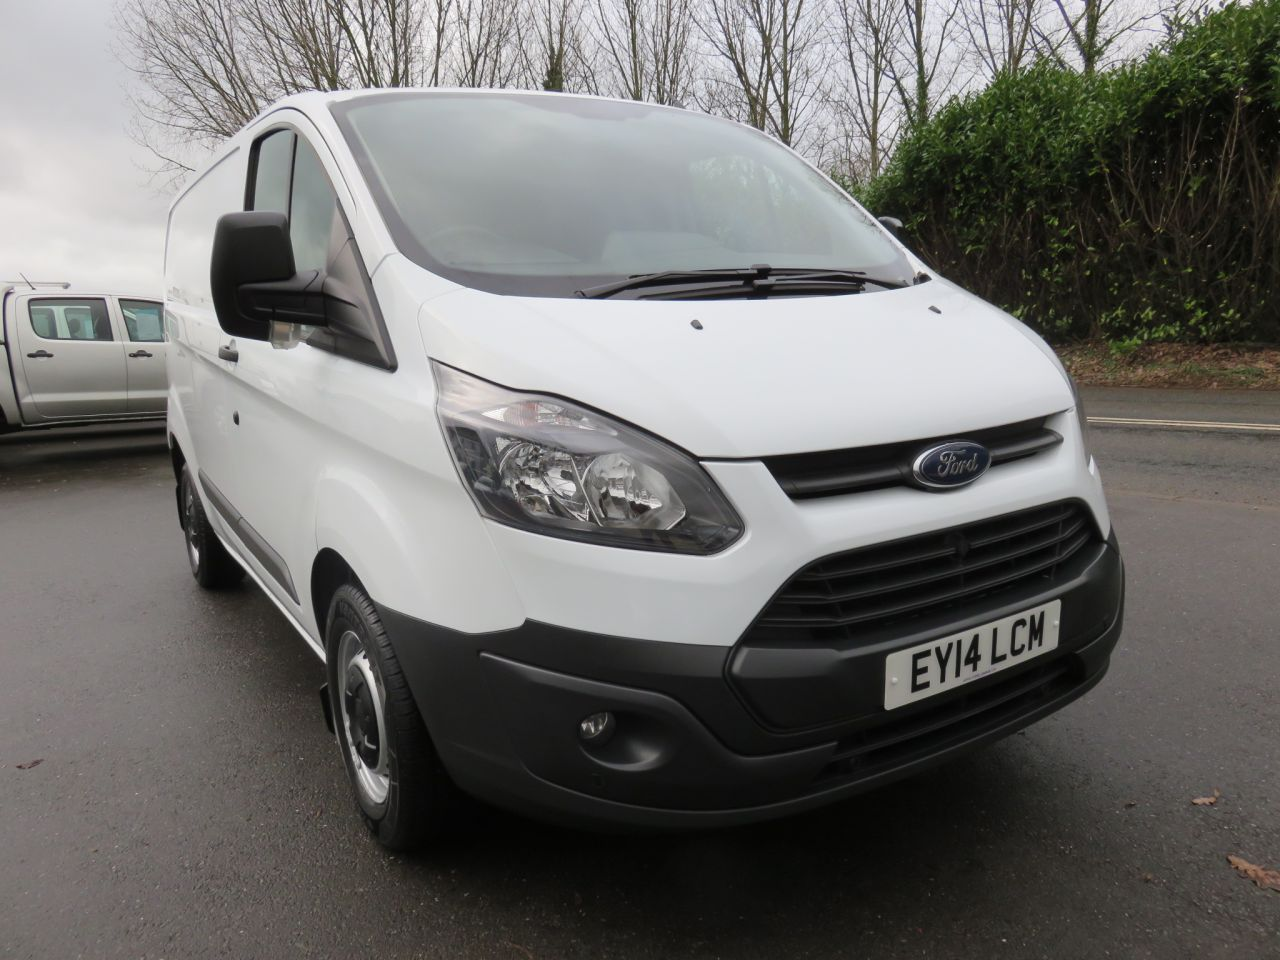 Used Ford Transit 2.2 TDCi 100ps Low Roof D/Cab Van Panel Van van for sale in Exeter, Devon